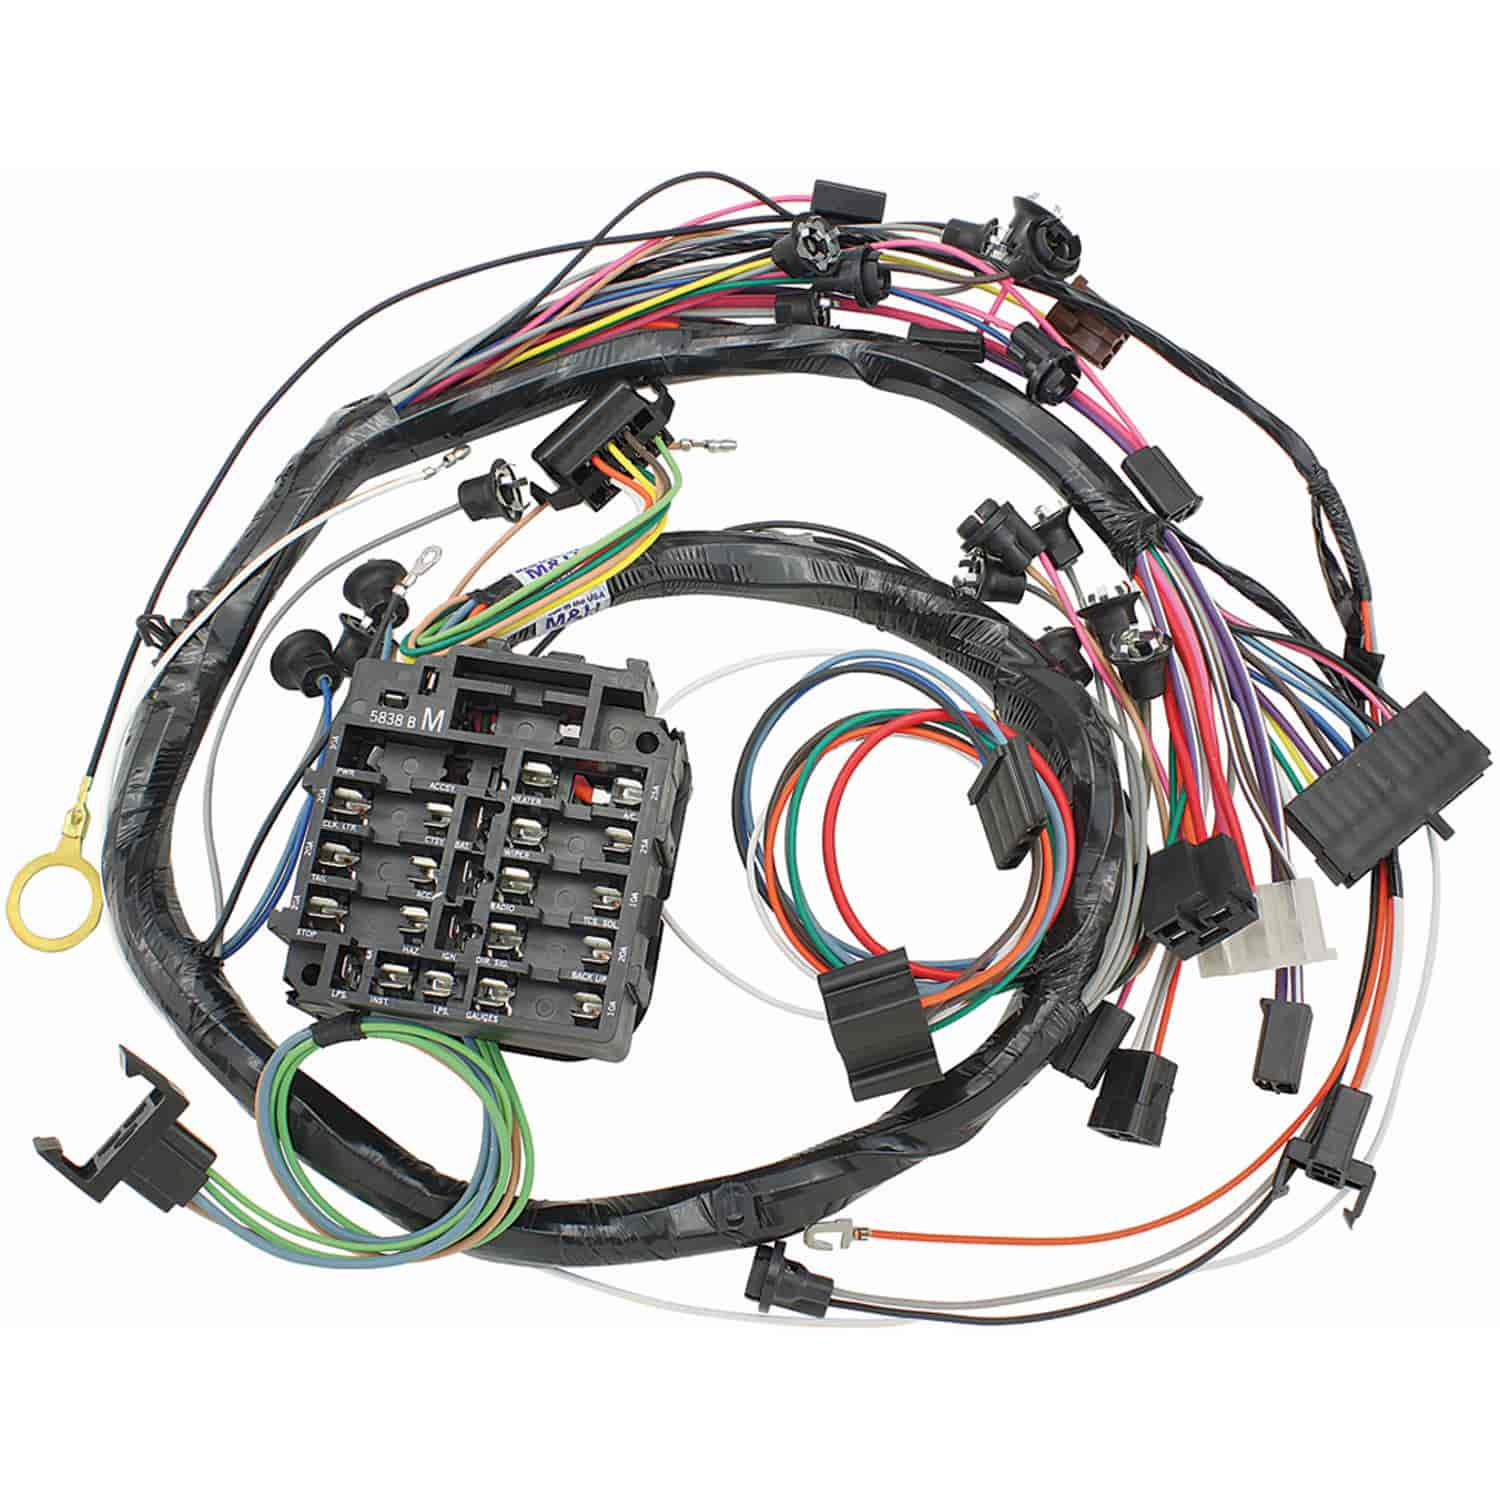 69 Chevelle Wiring Dash Lights Diagram Pictures 1972 Cadillac Deville Restoparts 12935 Harness 1969 El Camino Rh Jegs Com 1968